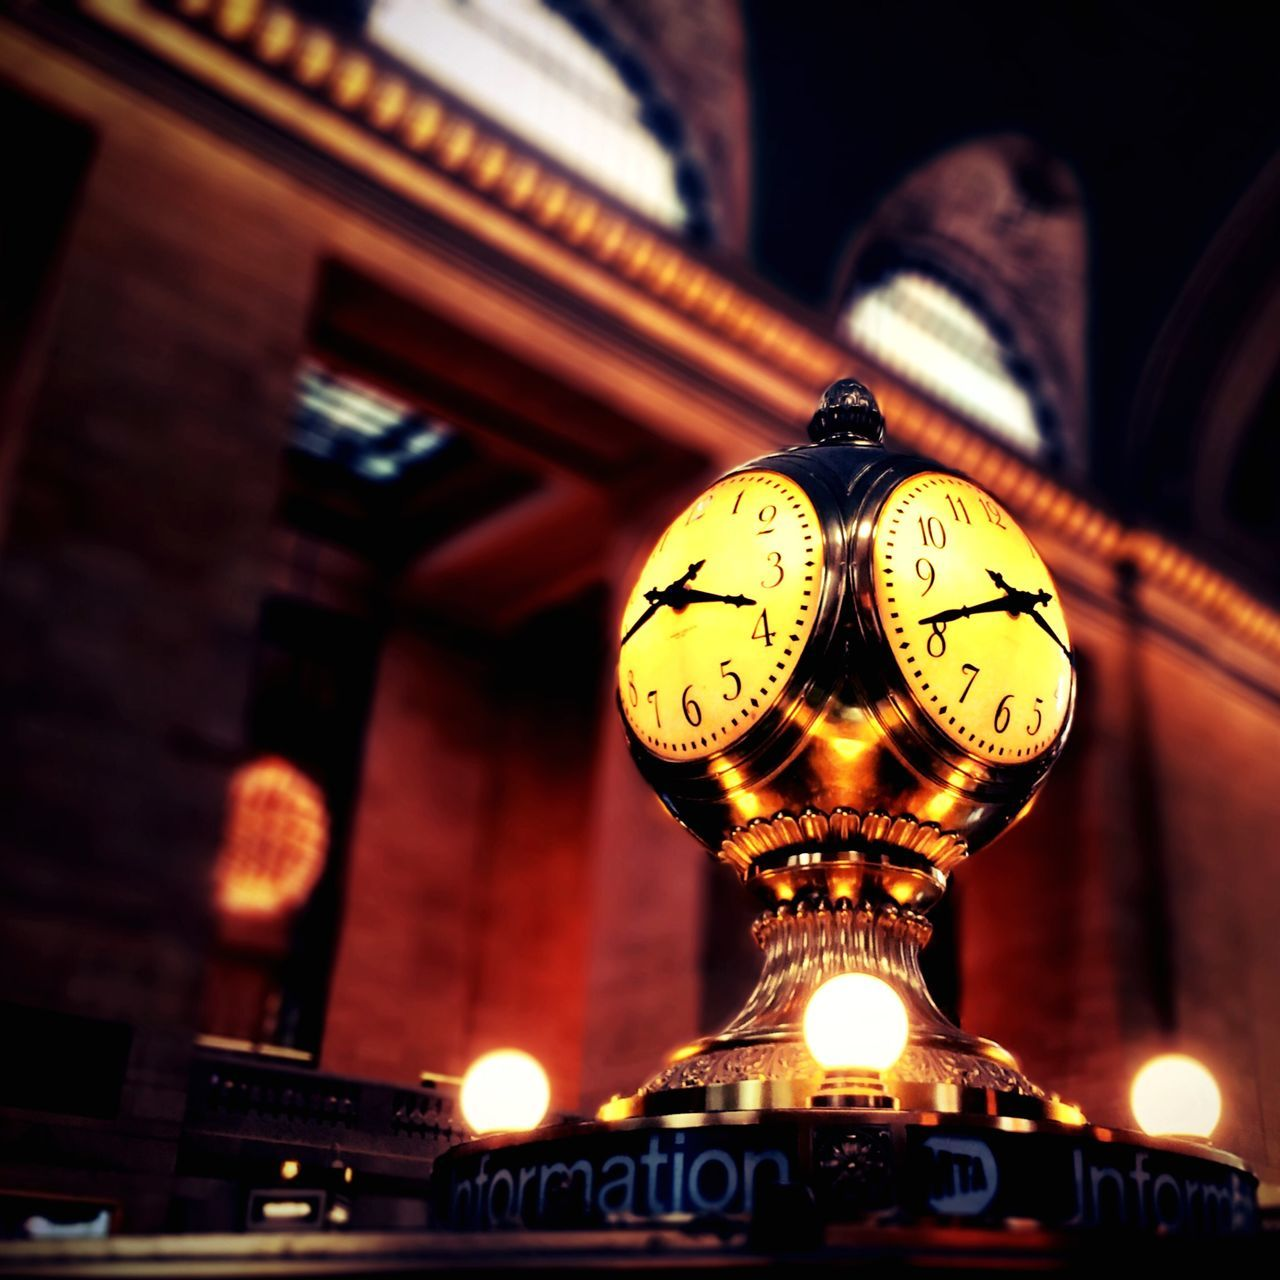 The Traveler - 2015 EyeEm Awards 3:42 Pm Grand Central Station New York New York City Manhattan EyeEm Best Shots EyeEm Best Edits EyeEm Gallery EyeEm